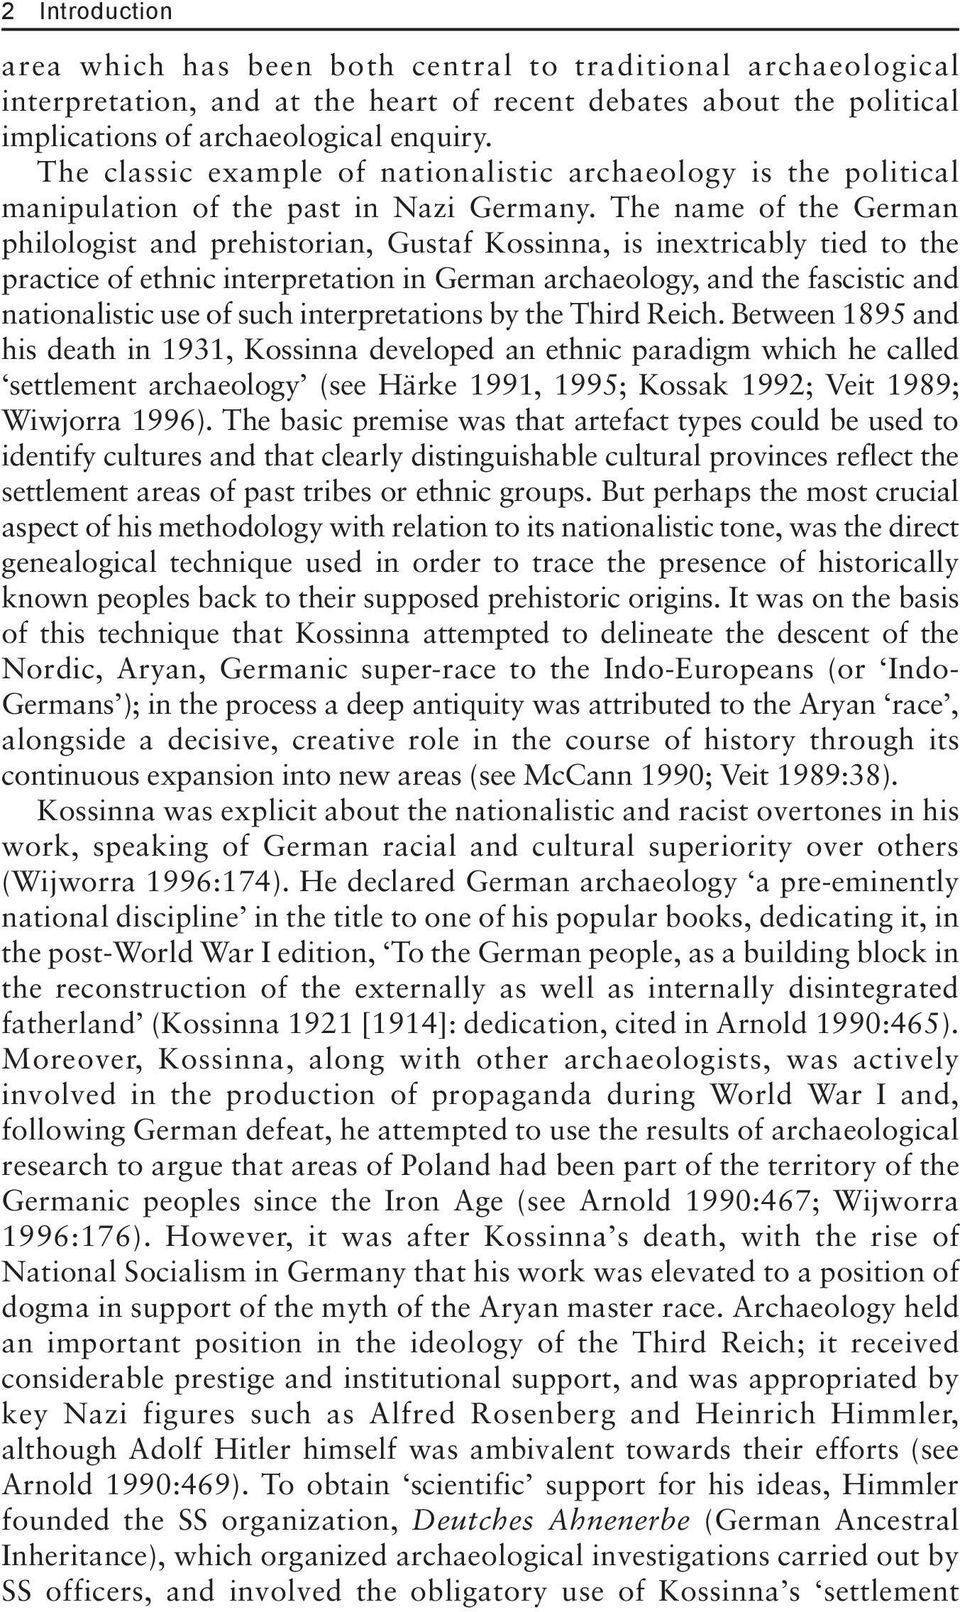 The name of the German philologist and prehistorian, Gustaf Kossinna, is inextricably tied to the practice of ethnic interpretation in German archaeology, and the fascistic and nationalistic use of